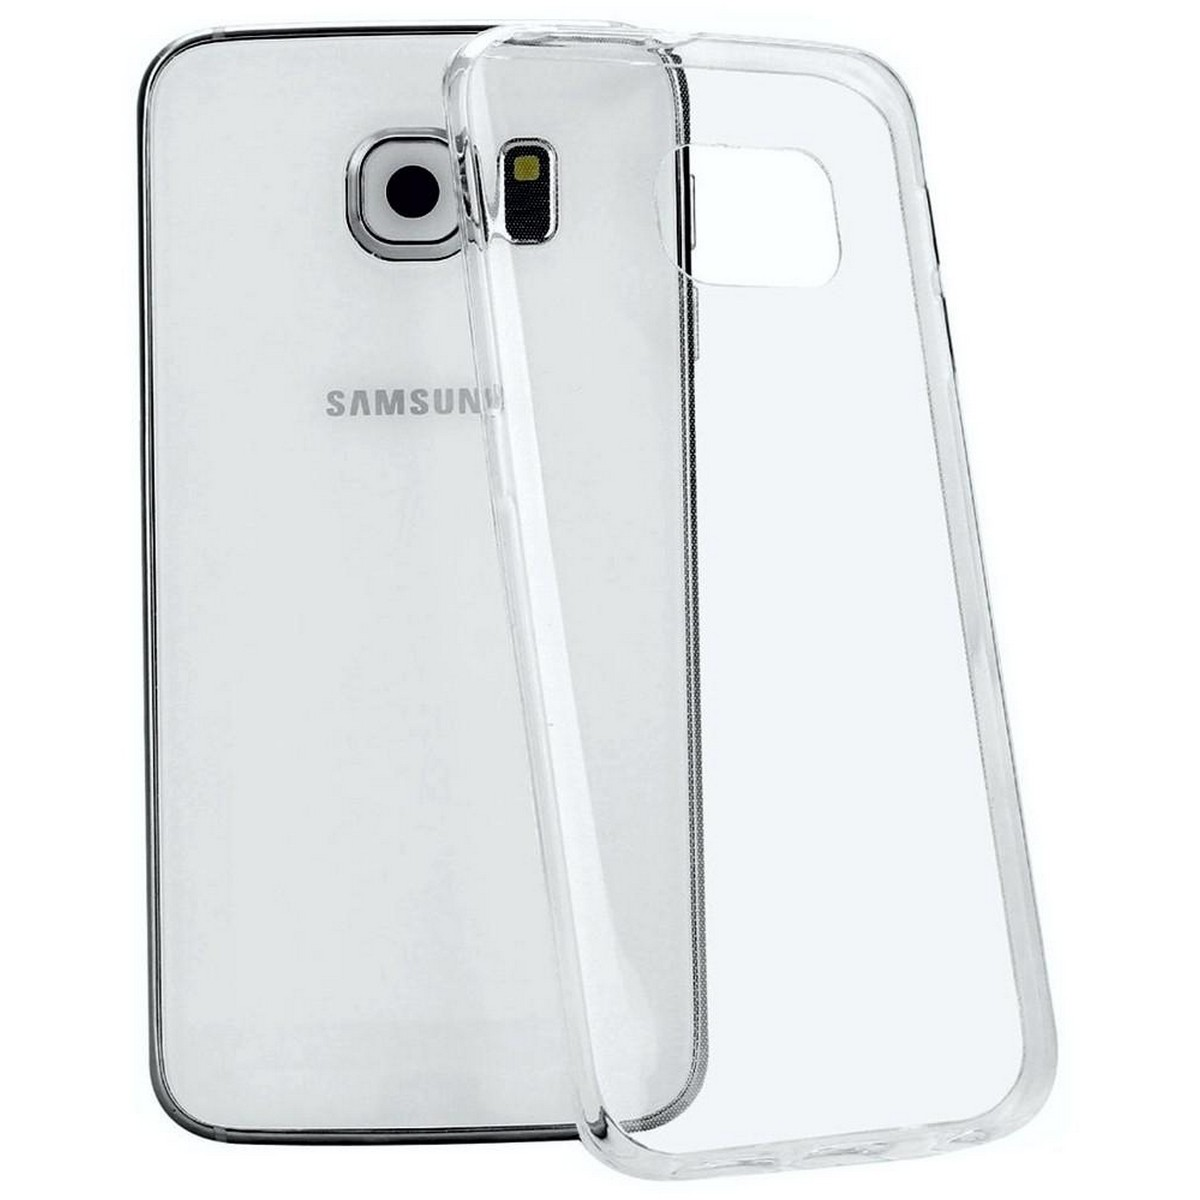 Samsung Galaxy S6, Flexible Case Soft Slim Jelly Transparent Clear TPU Cover